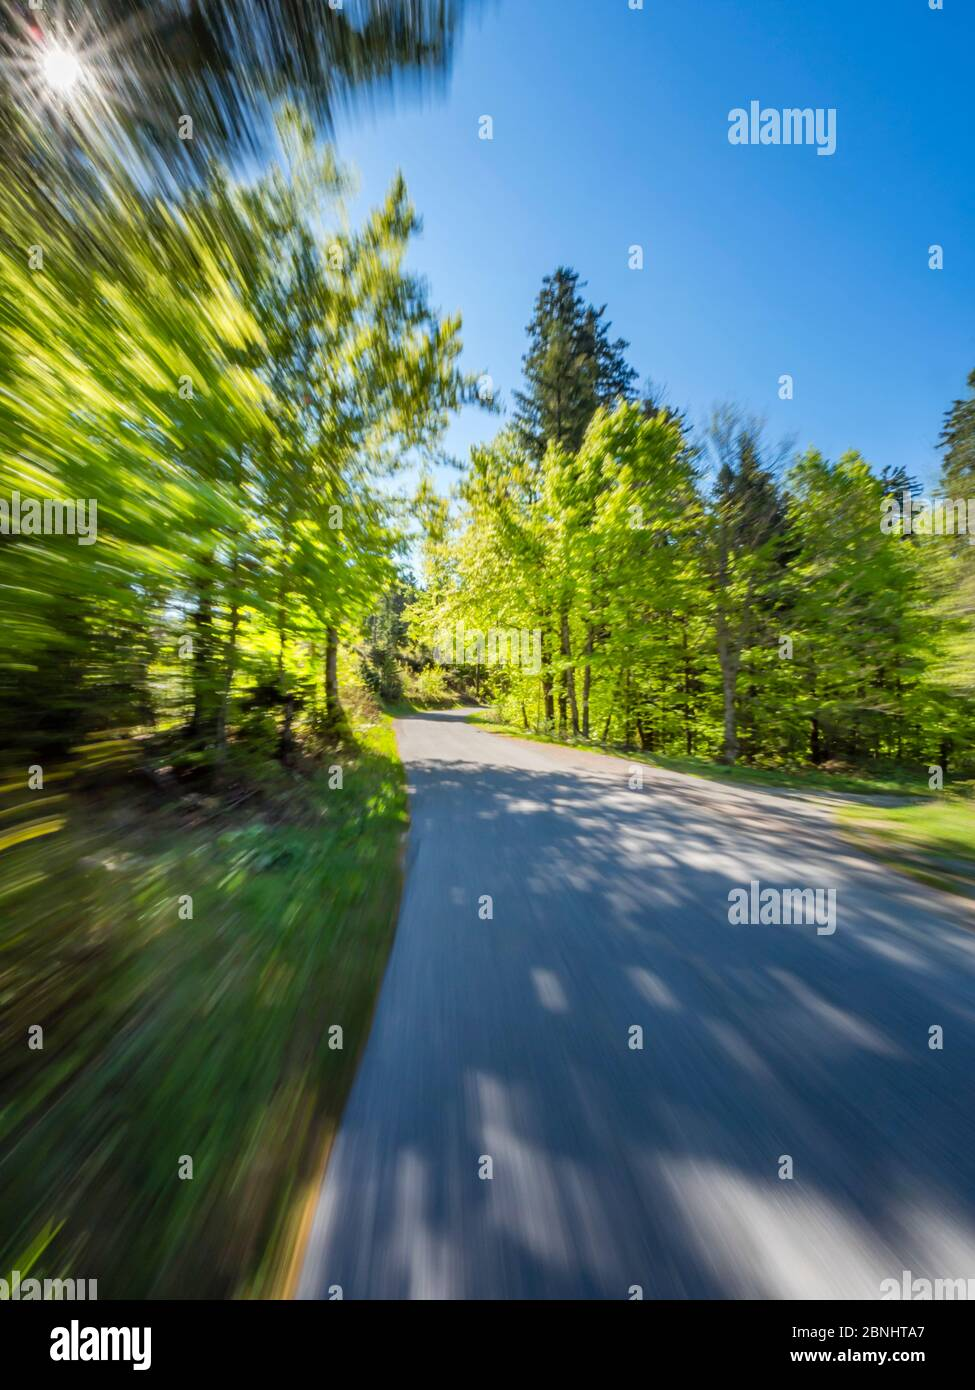 Green forest countryroad road fast run drive intentionally blurry representing speed speedy fast movement runaway away sun frame extreme left corner Stock Photo